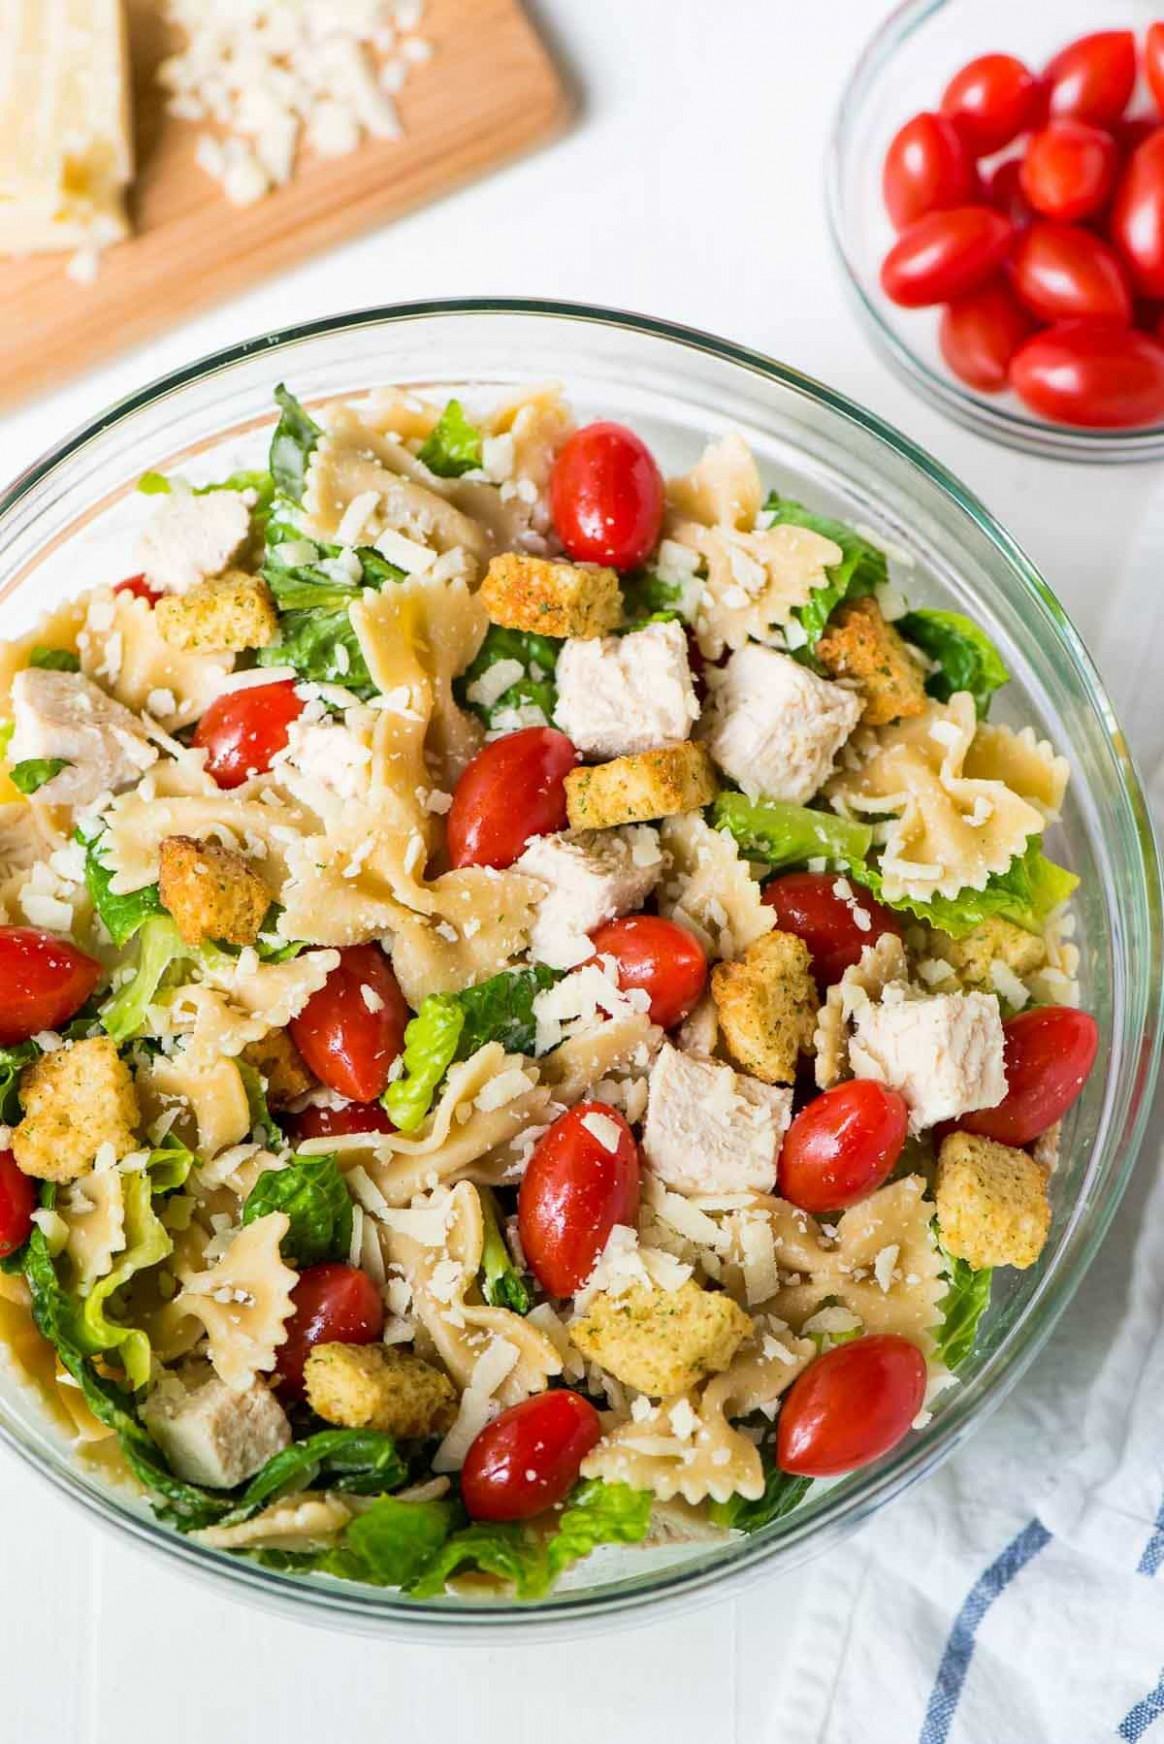 Chicken Caesar Pasta Salad | Well Plated by Erin